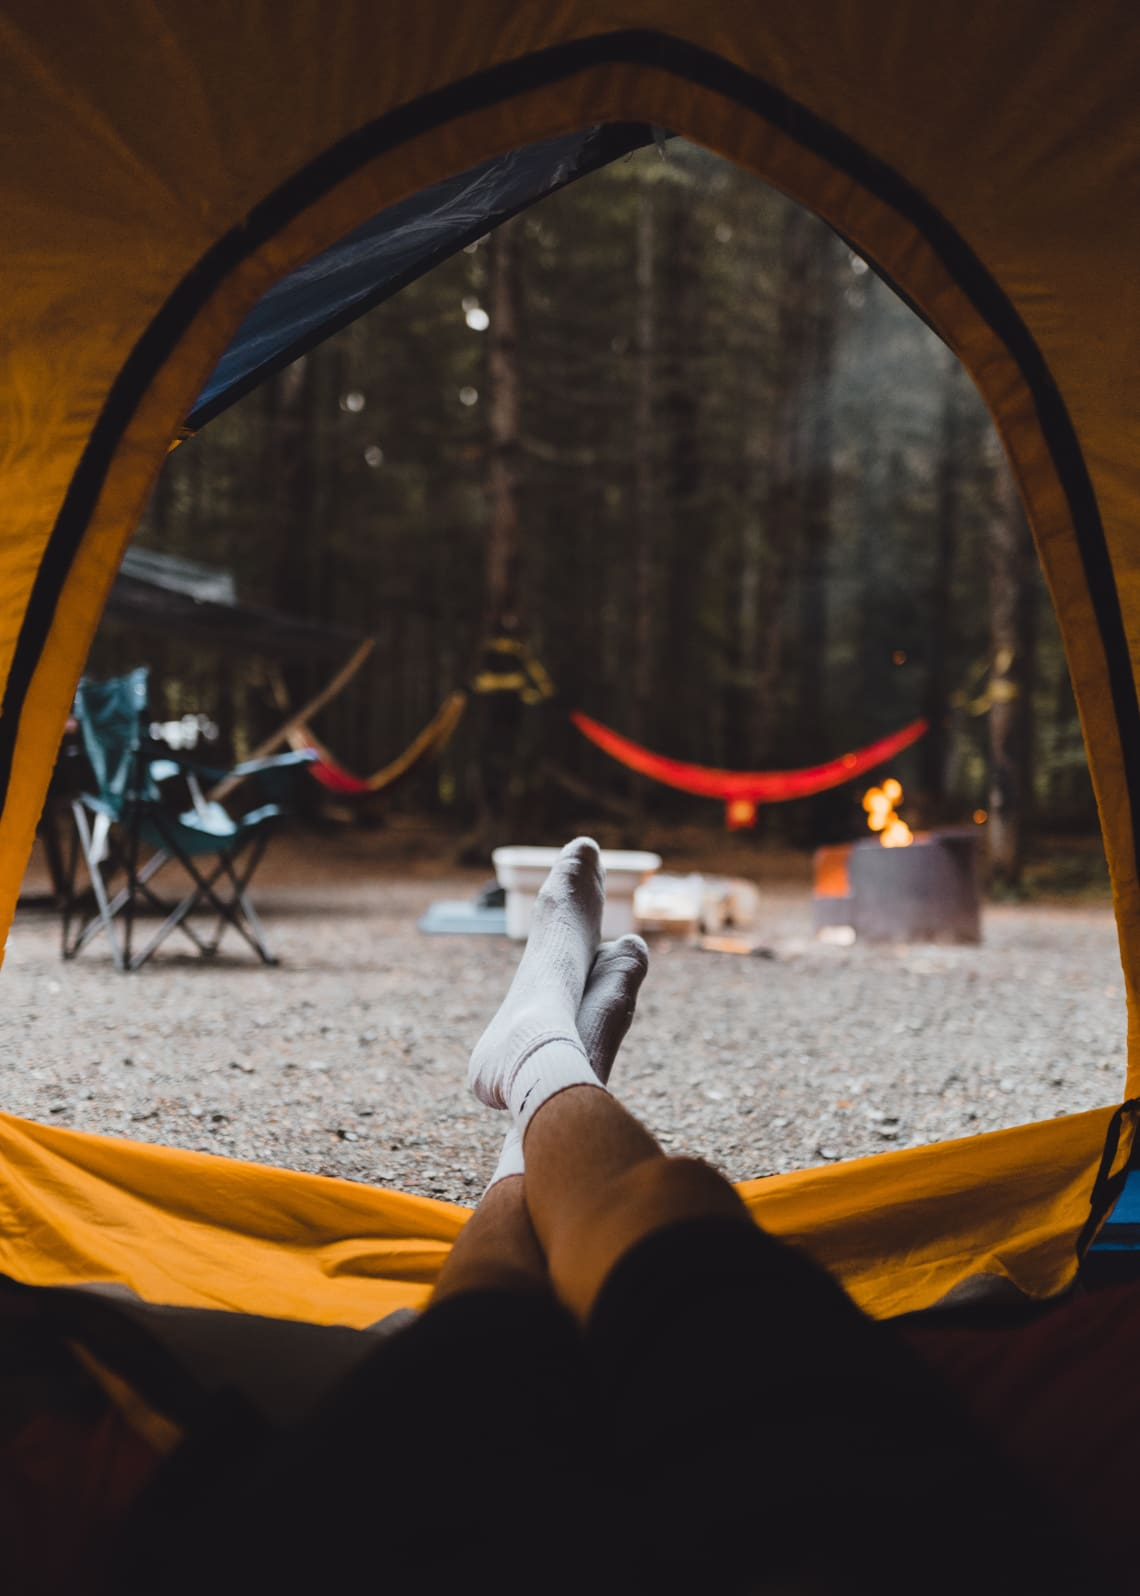 digital nomadism is not an easy life as people think